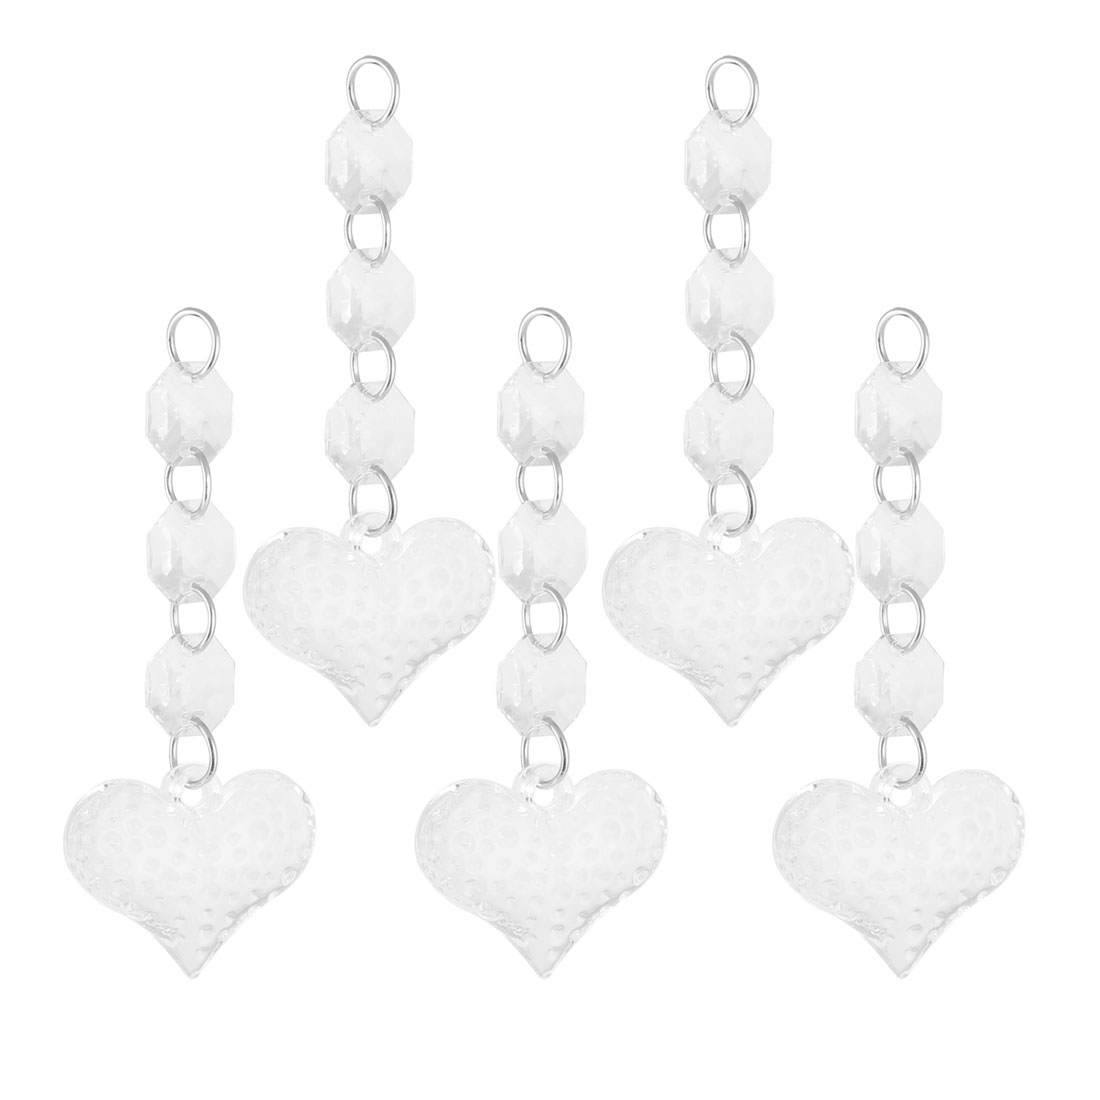 Home Livingroom Plastic Heart Shaped Sparkling Chandelier Crystal Pendant 5 Pcs